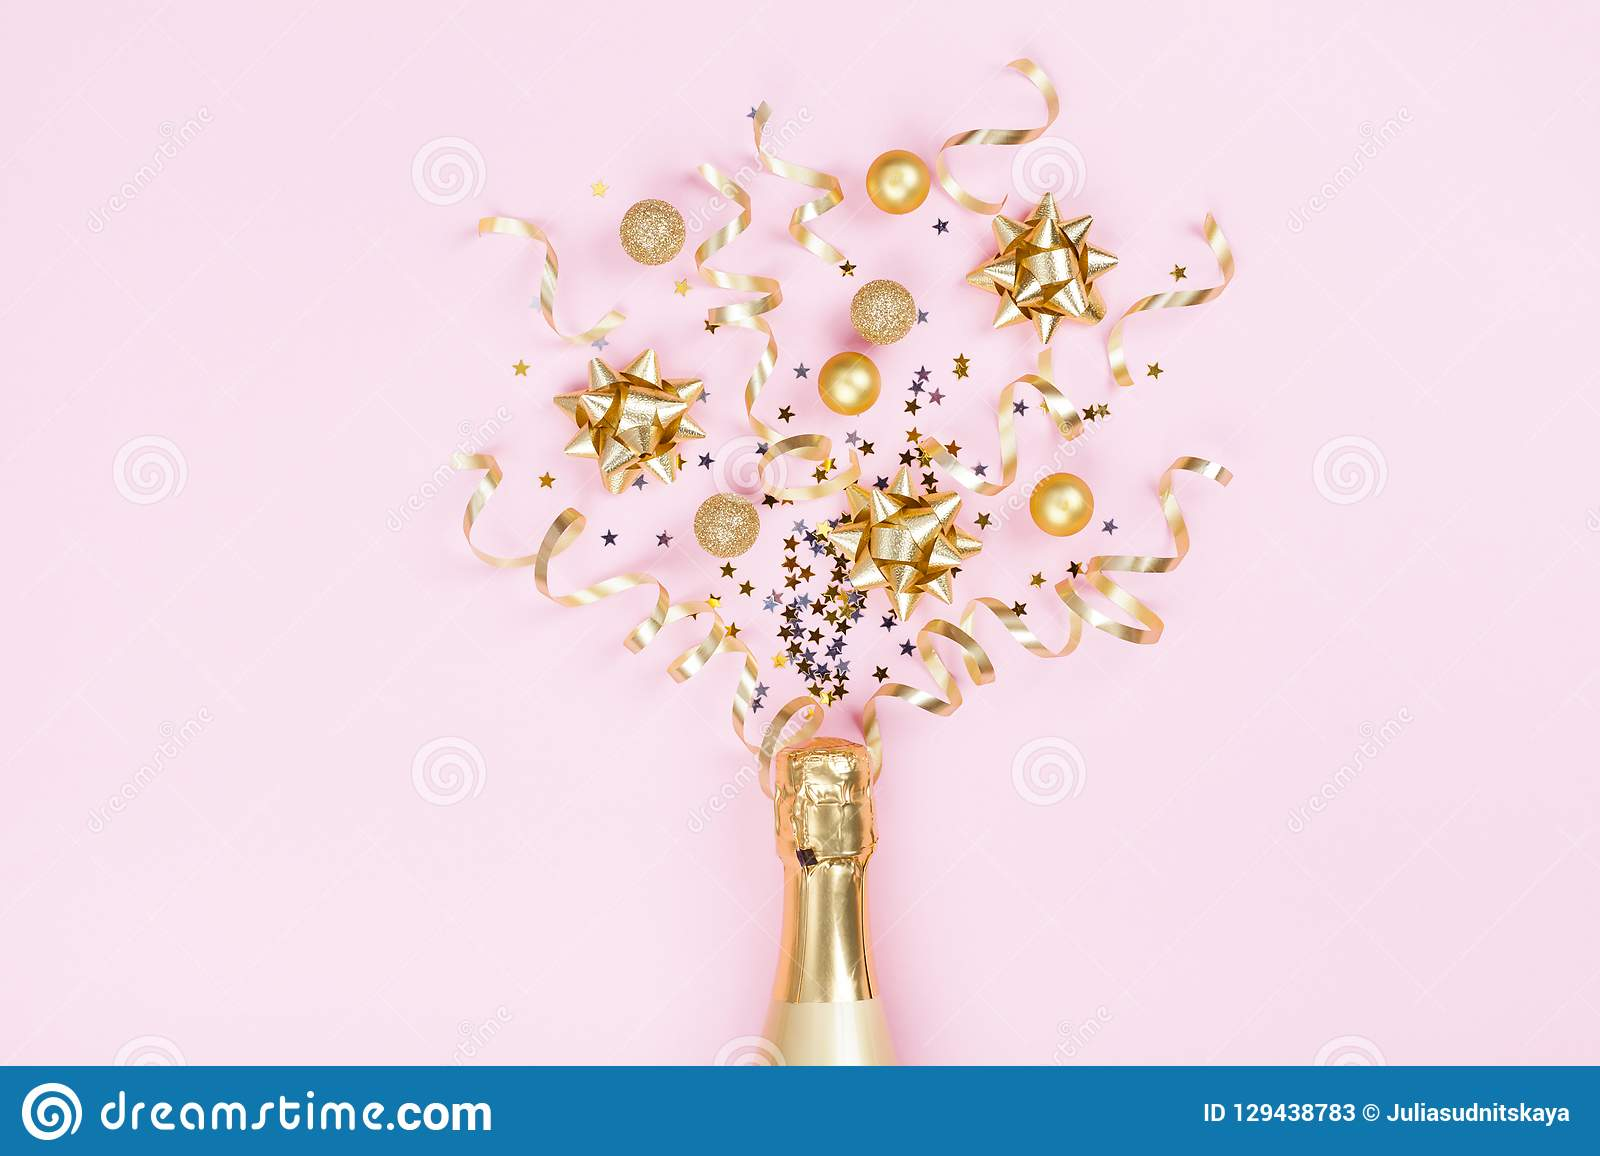 Champagne bottle with christmas decoration from confetti stars, golden balls and party streamers on pink background. Flat lay.